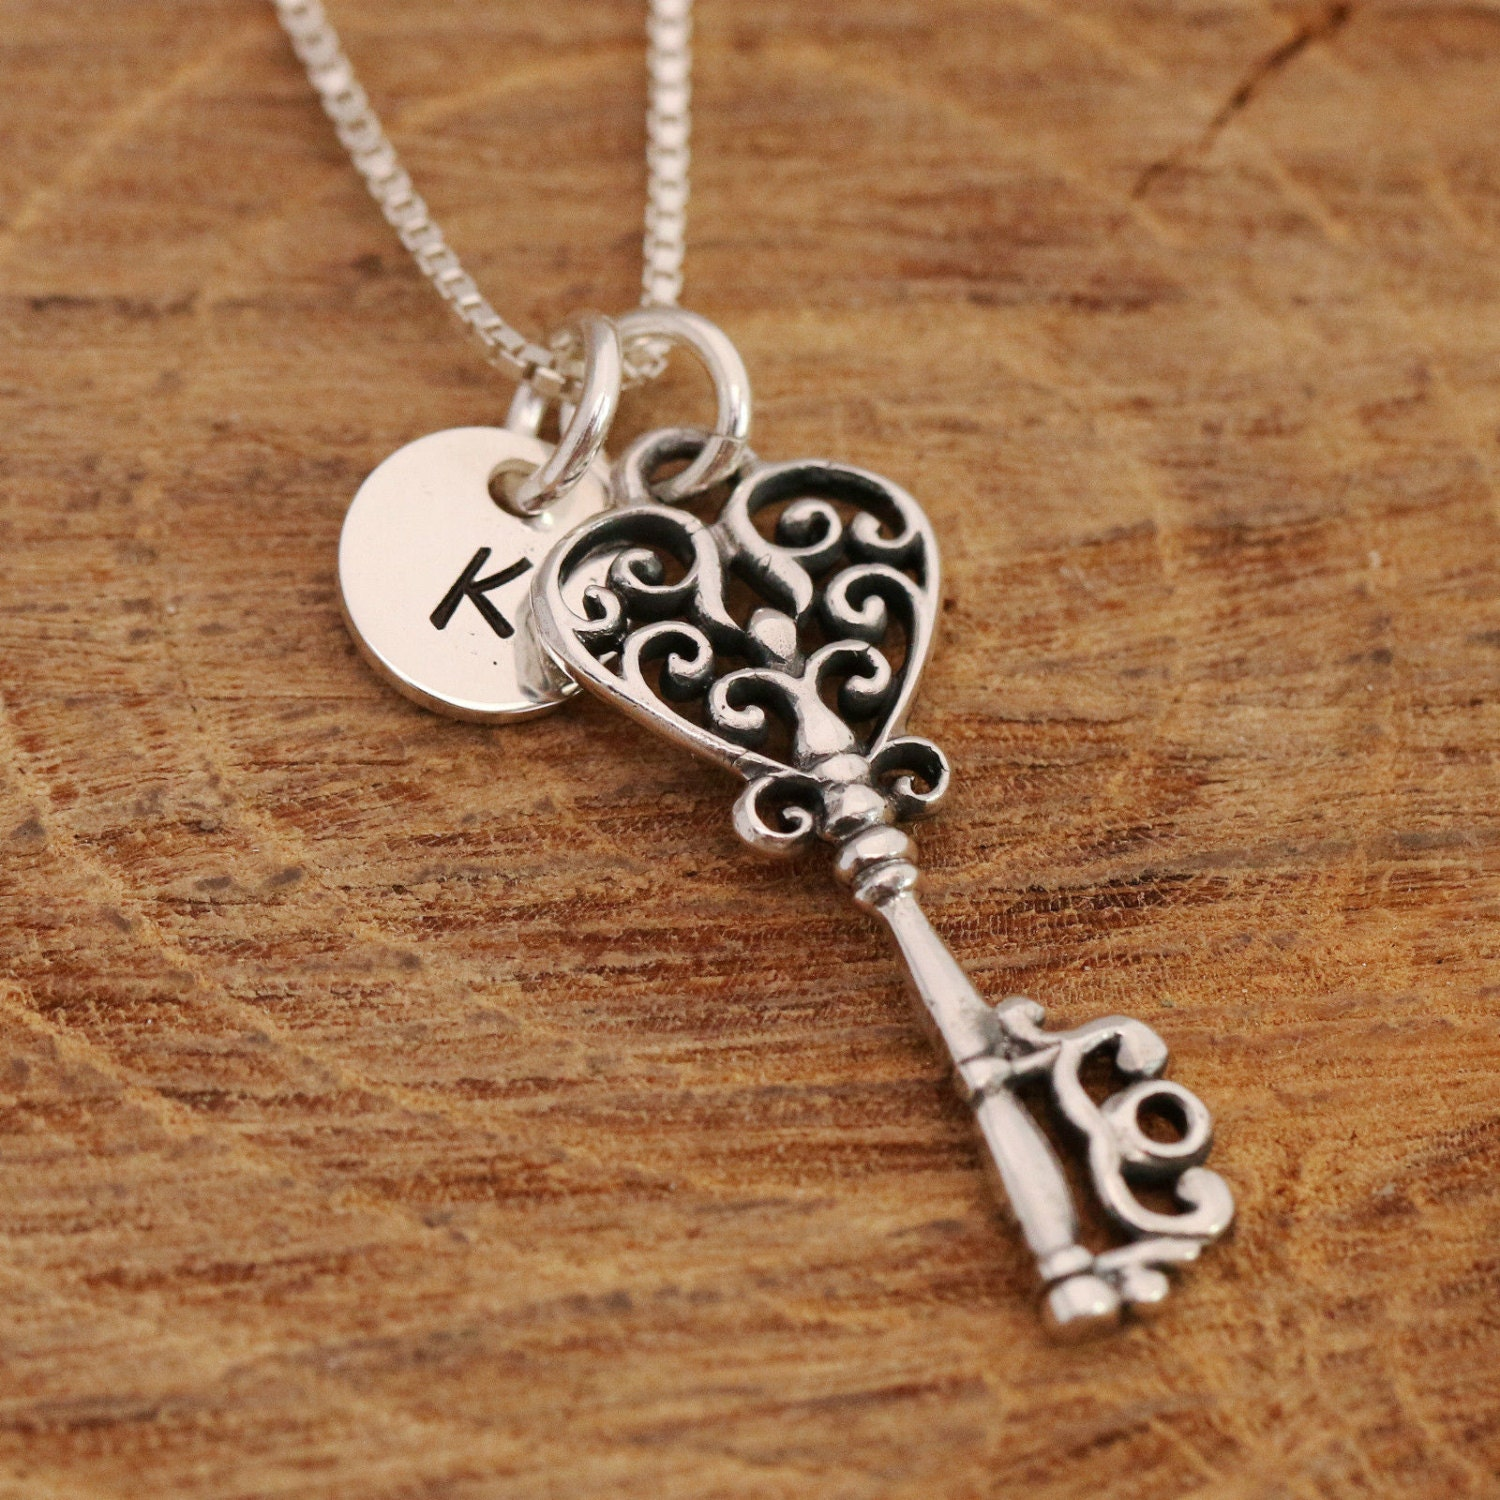 Bespoke Personalised Sterling Silver Antique Heart Bow Key Personalized Pendant Necklace Birthday Present Comes Gift With Box